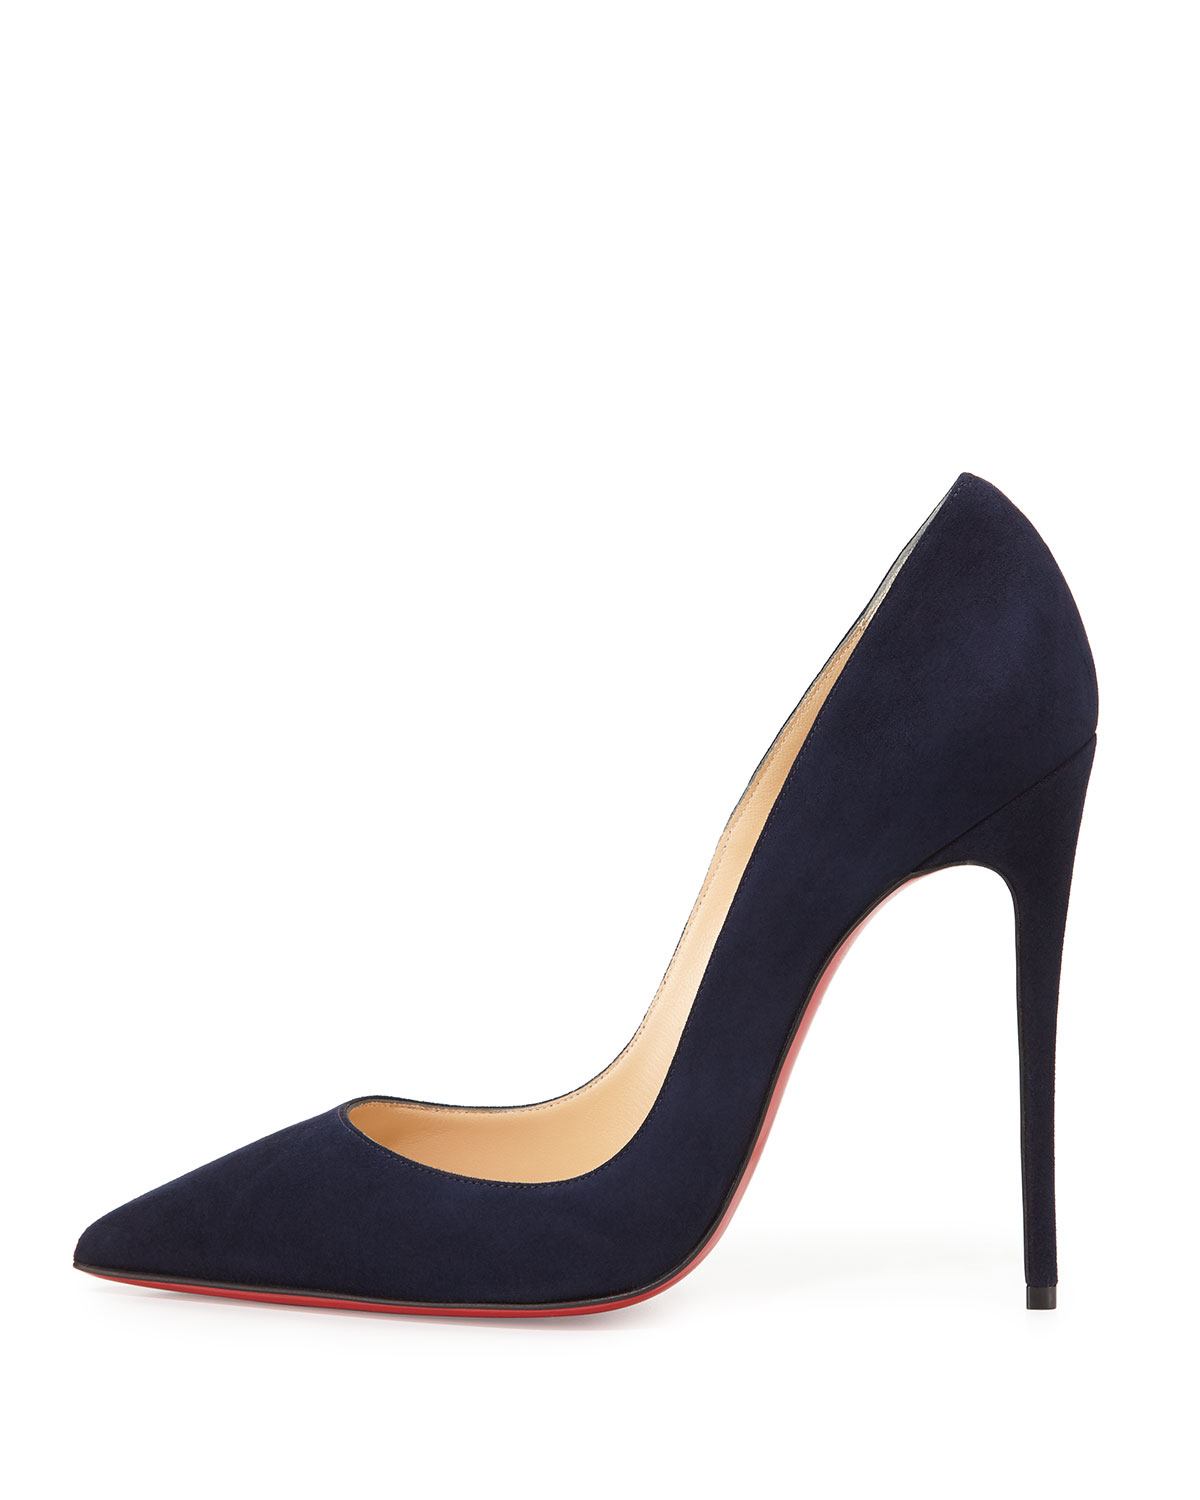 christian louboutin navy shoes